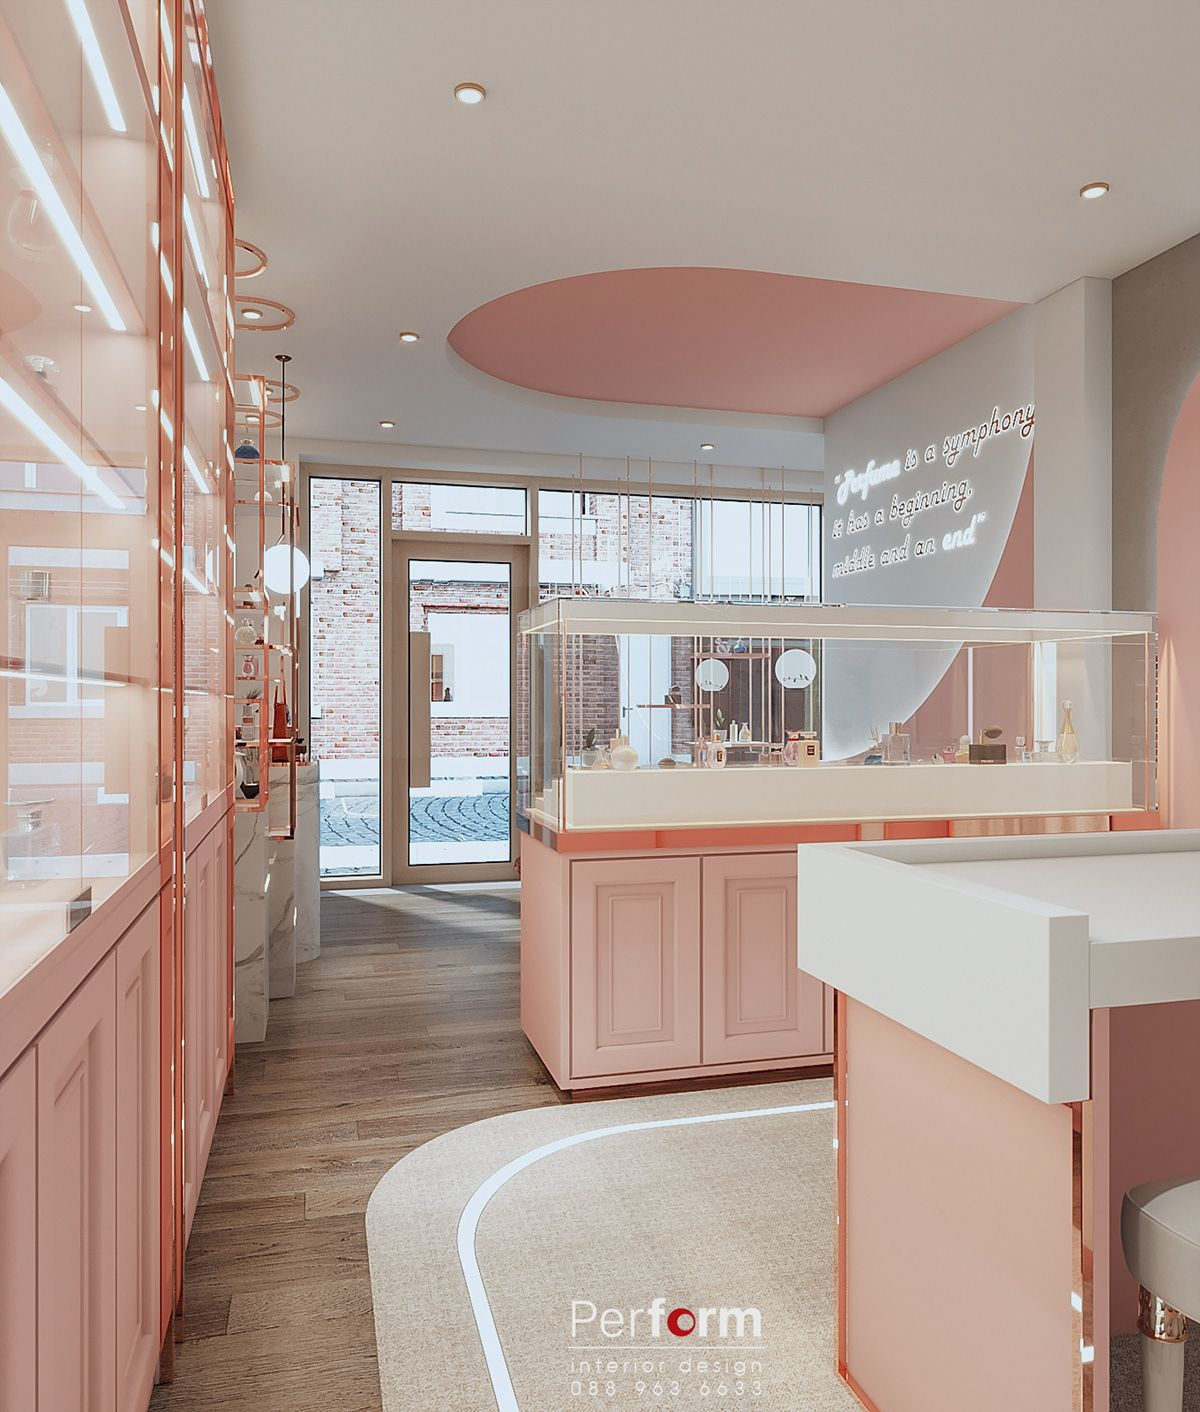 Perfume Shop Luxury On Behance Store Design Interior Interior